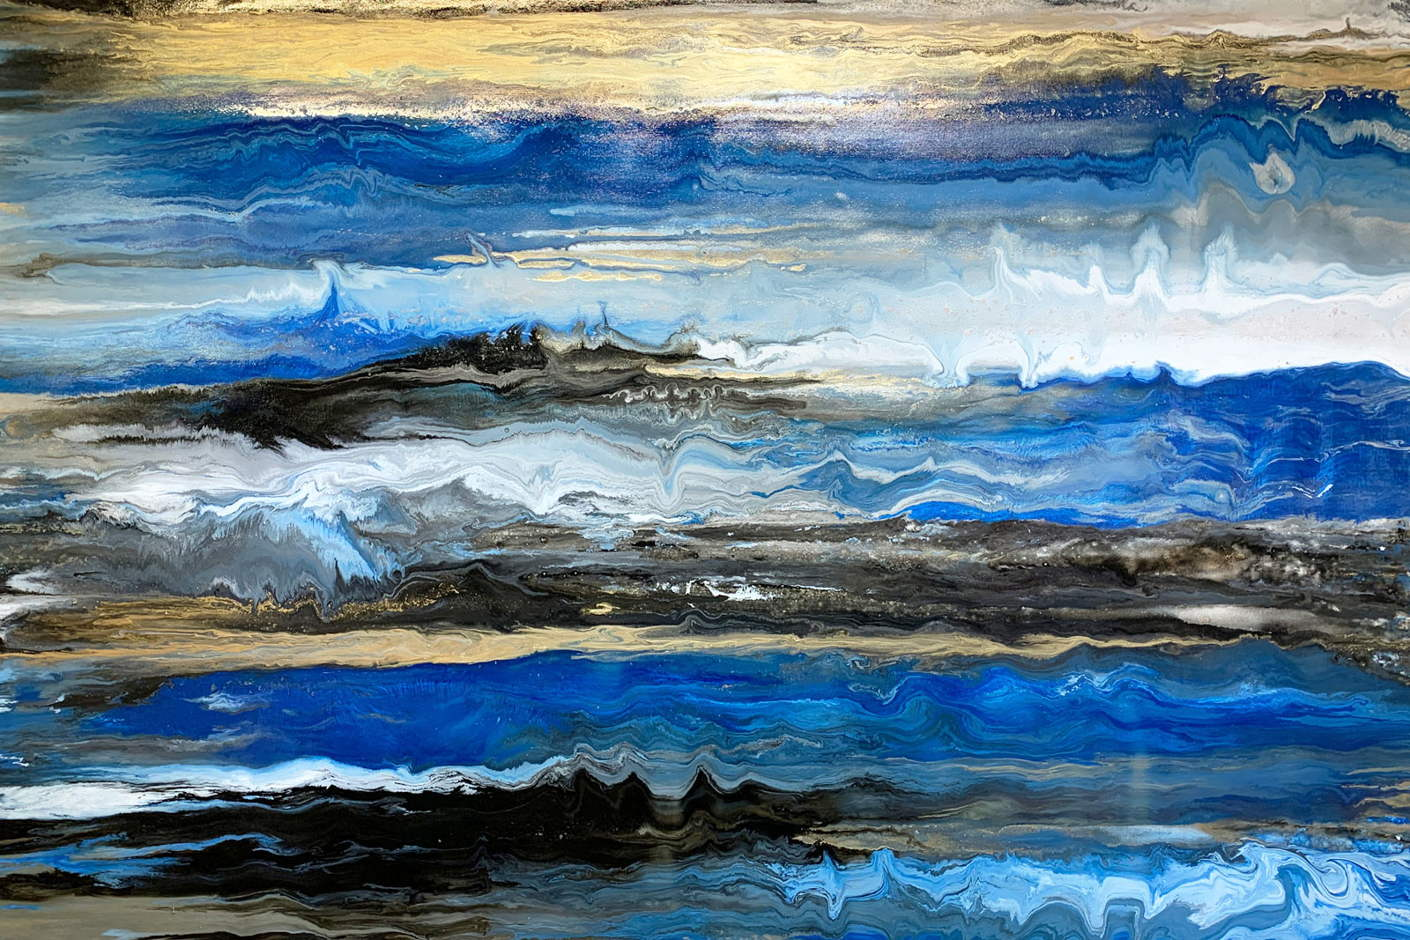 Rising Tides blue and gold art by Swarez